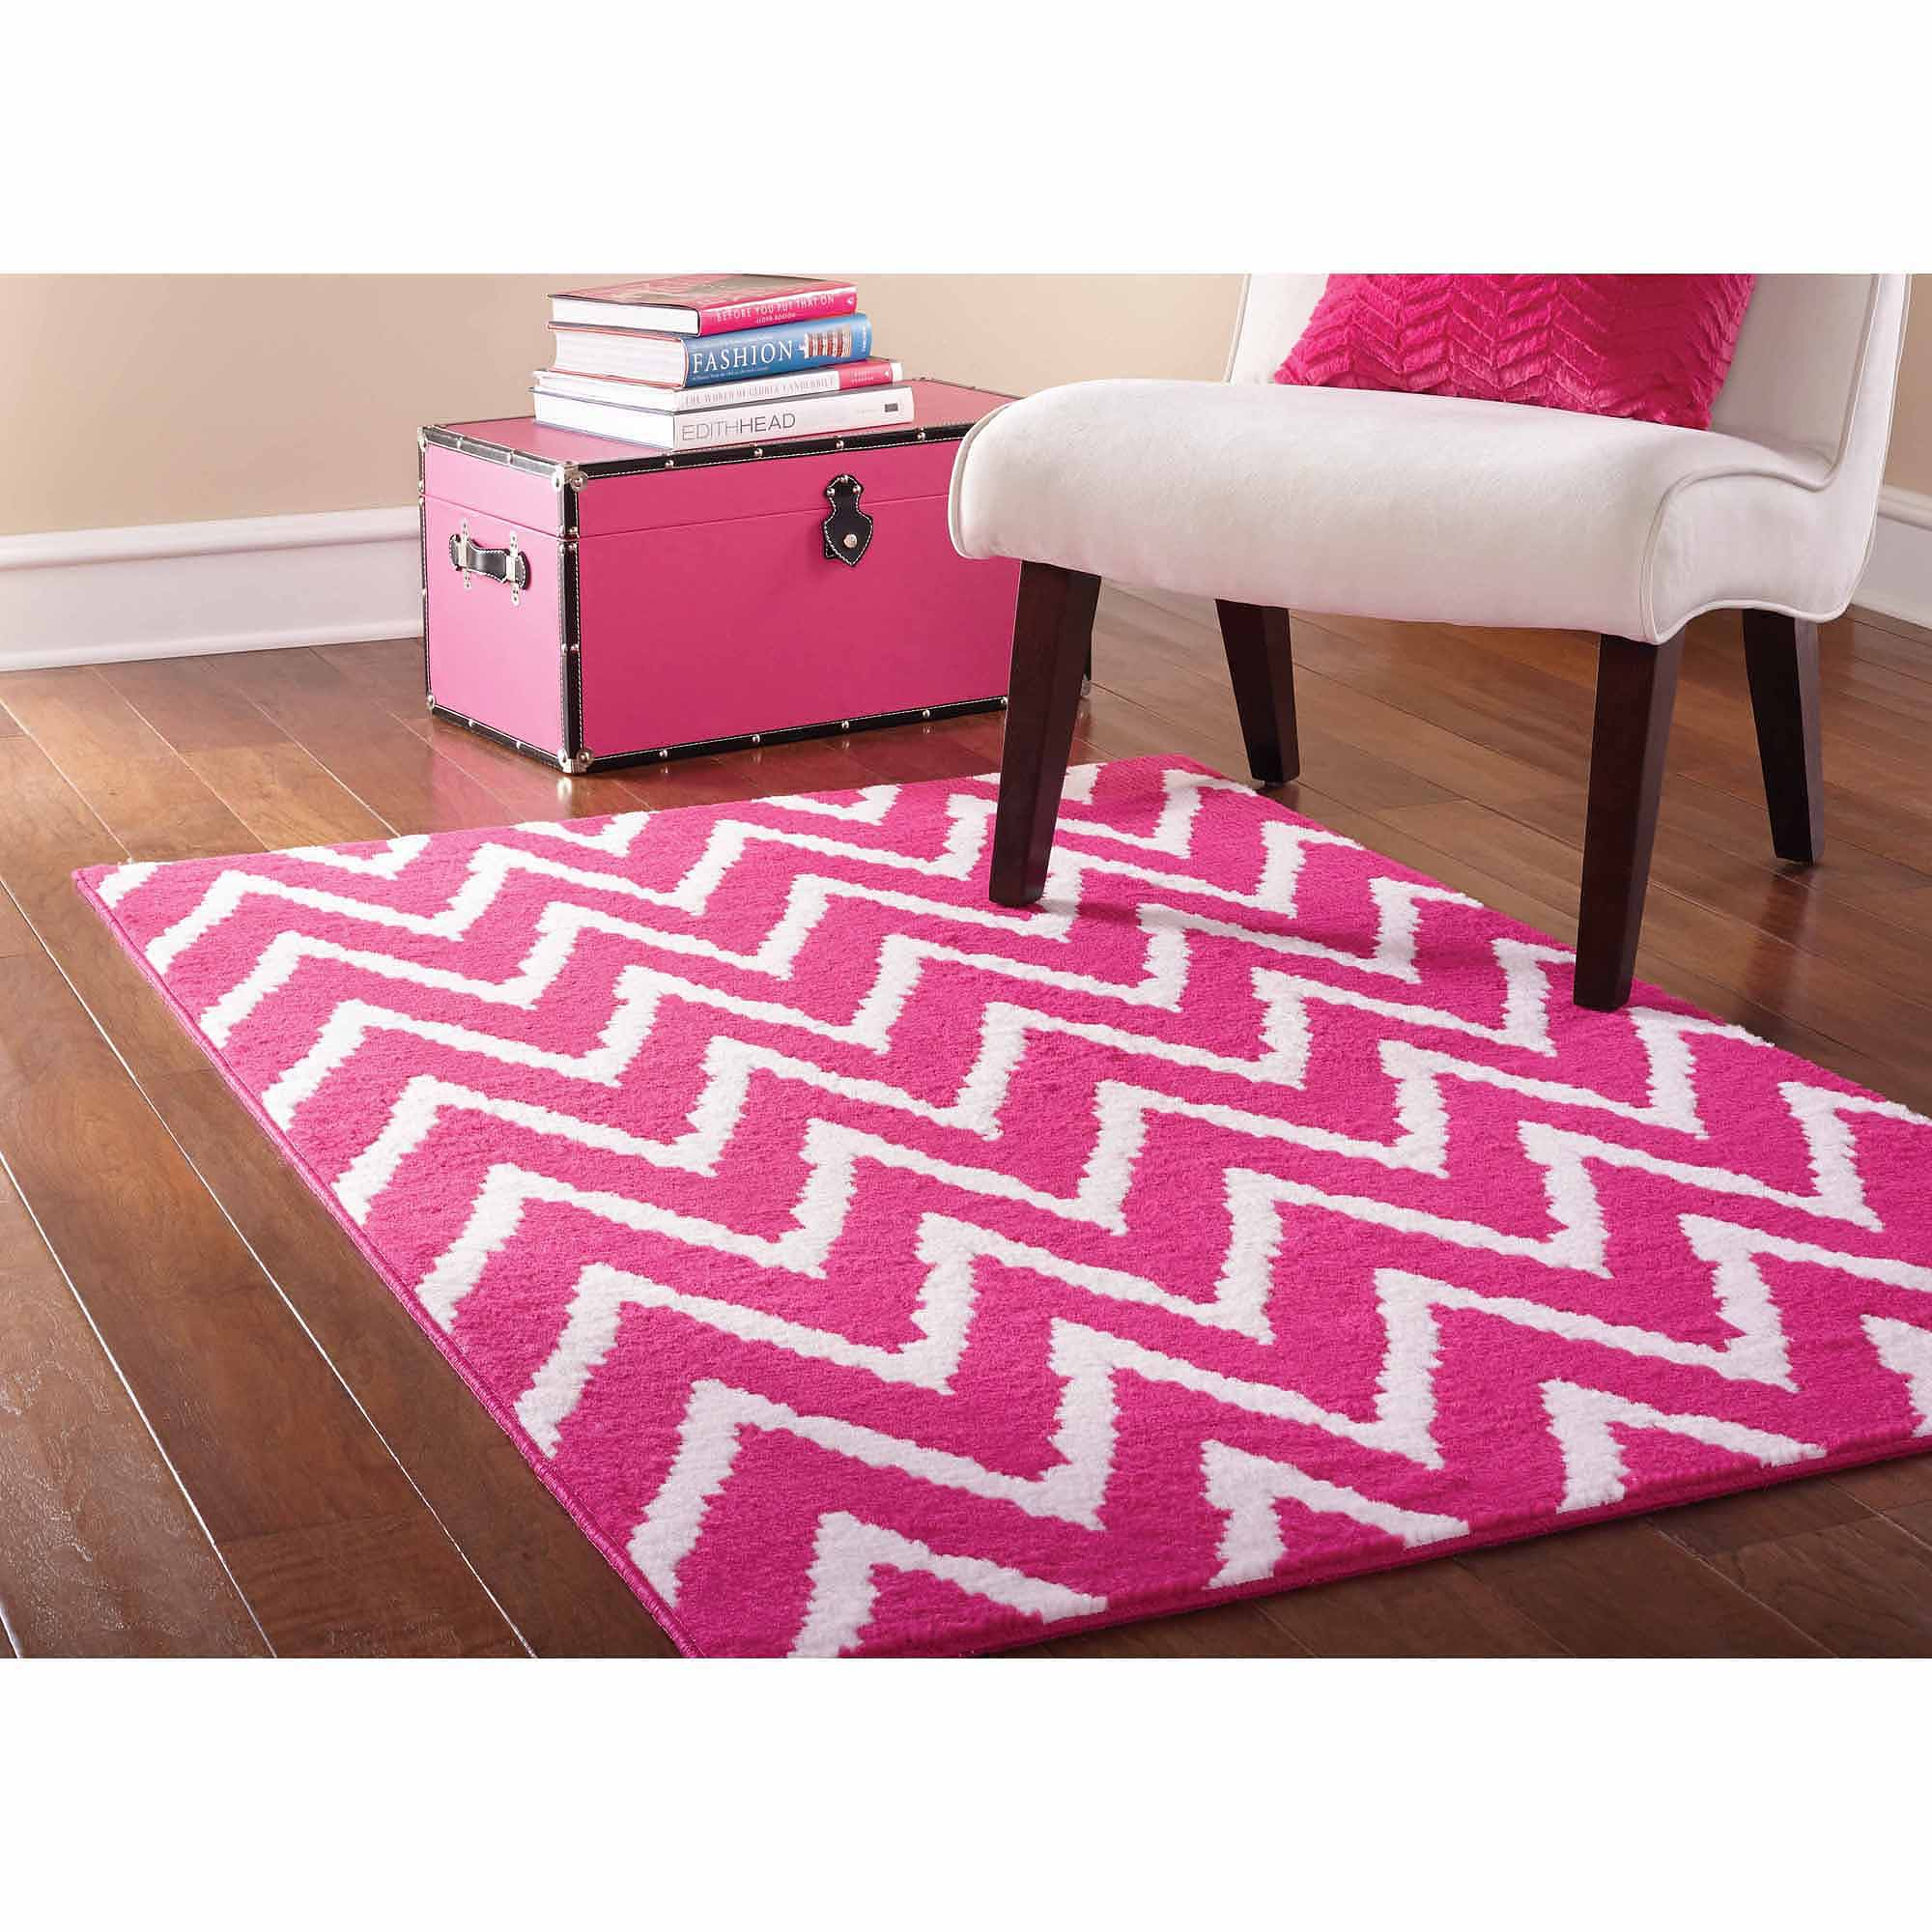 Pink Carpet Rug Mainstays Distressed Zig Zag Rugs For Kids Room Bedroom 45